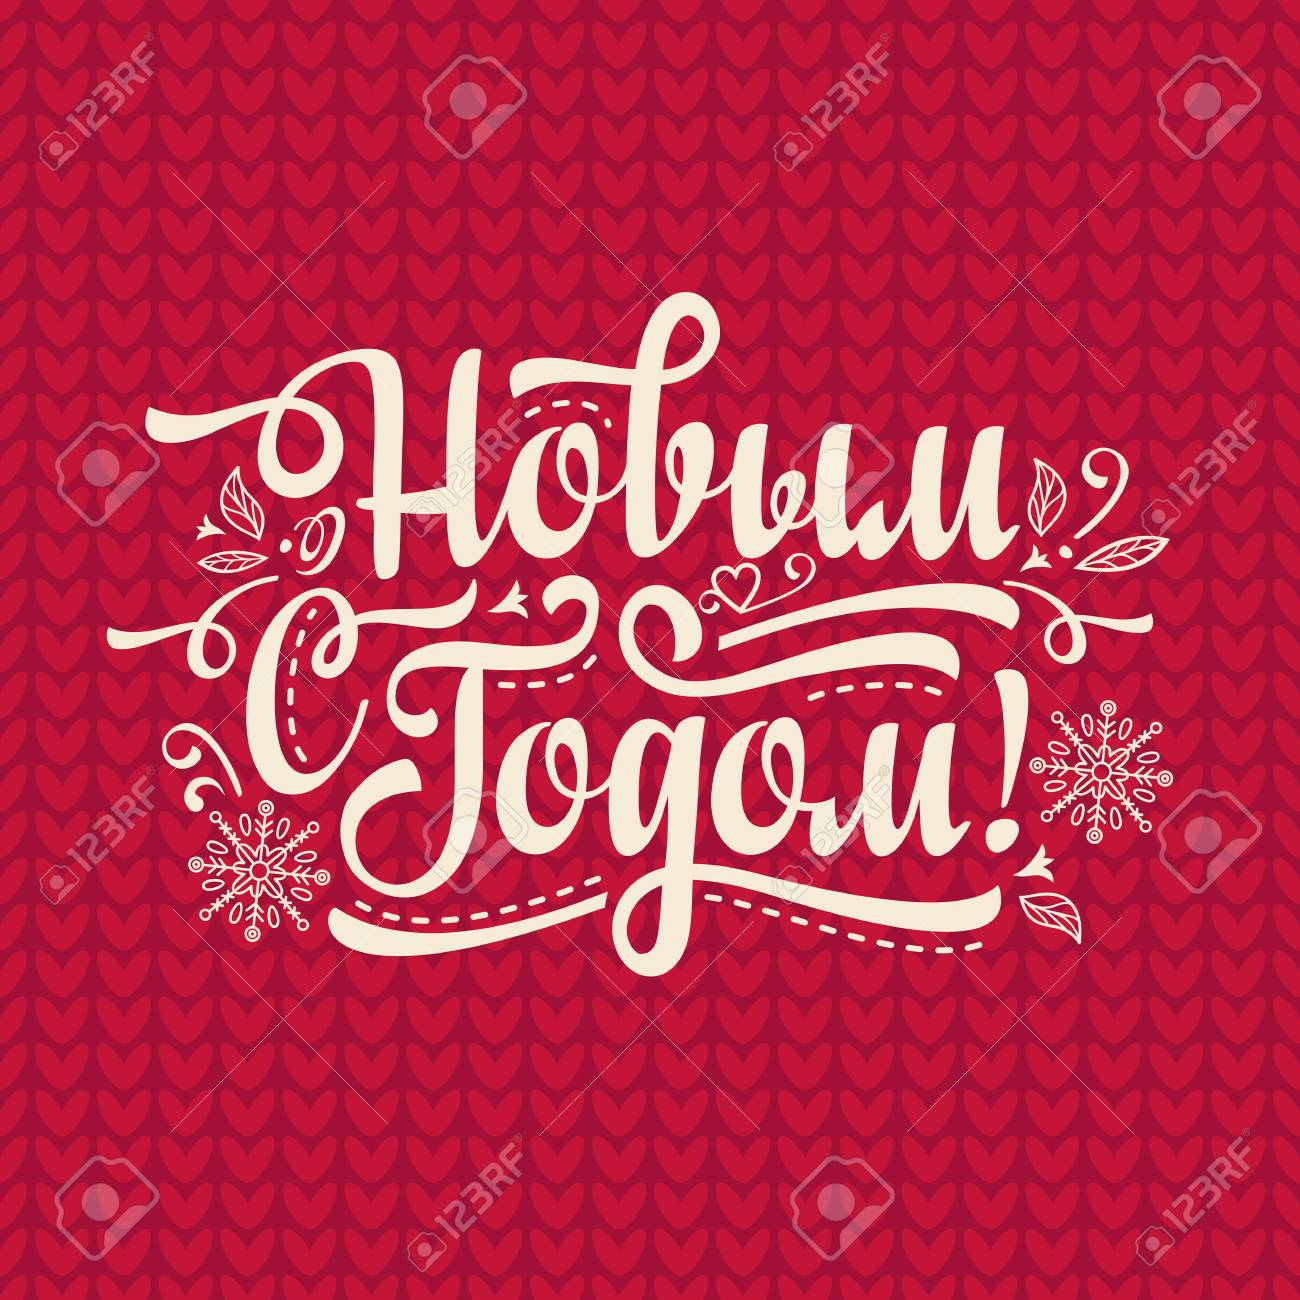 New Year Message Lettering Composition With Phrase In Russian